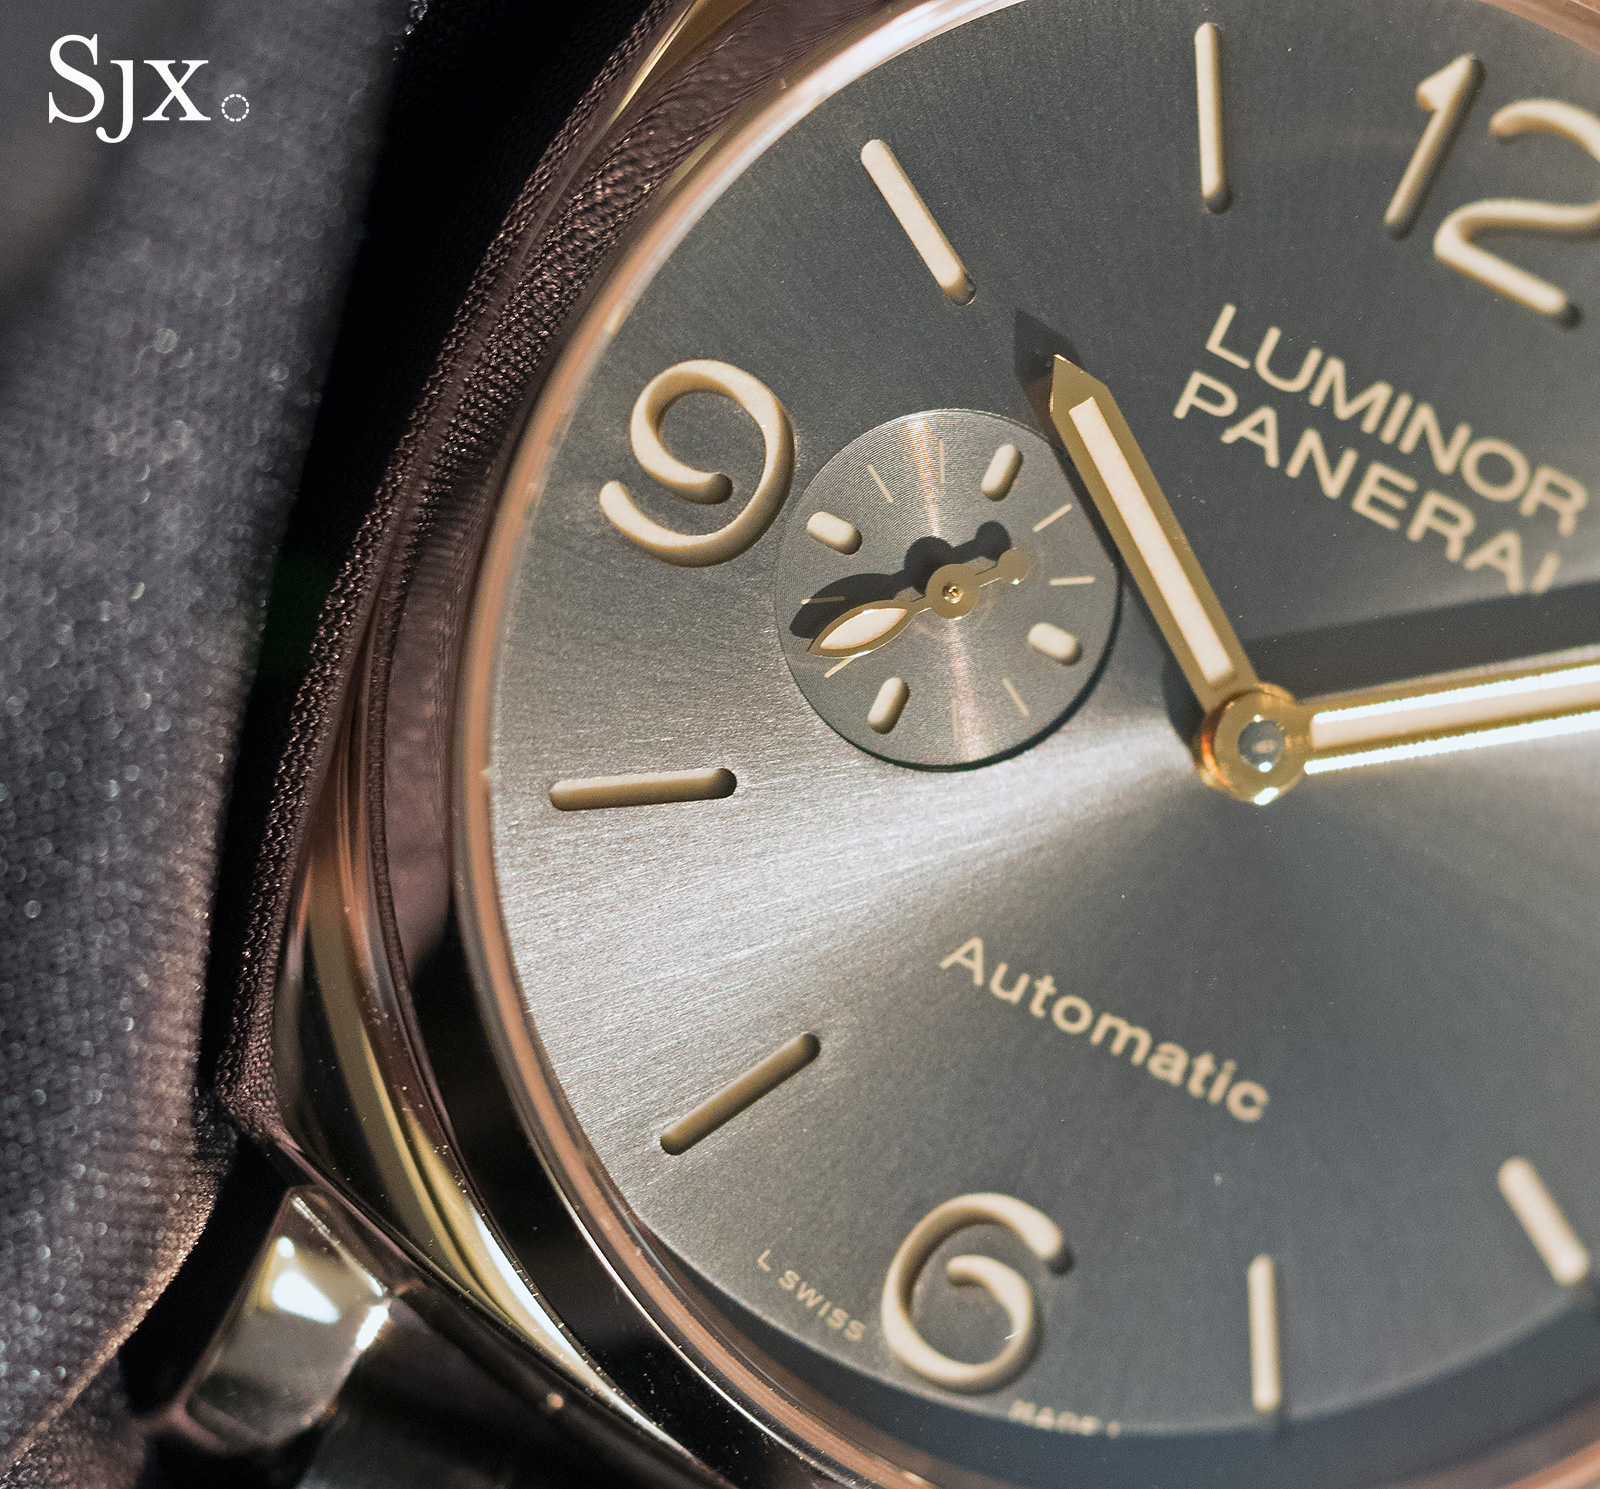 Panerai Luminor Due Red Gold Automatic 45mm PAM675 - 3